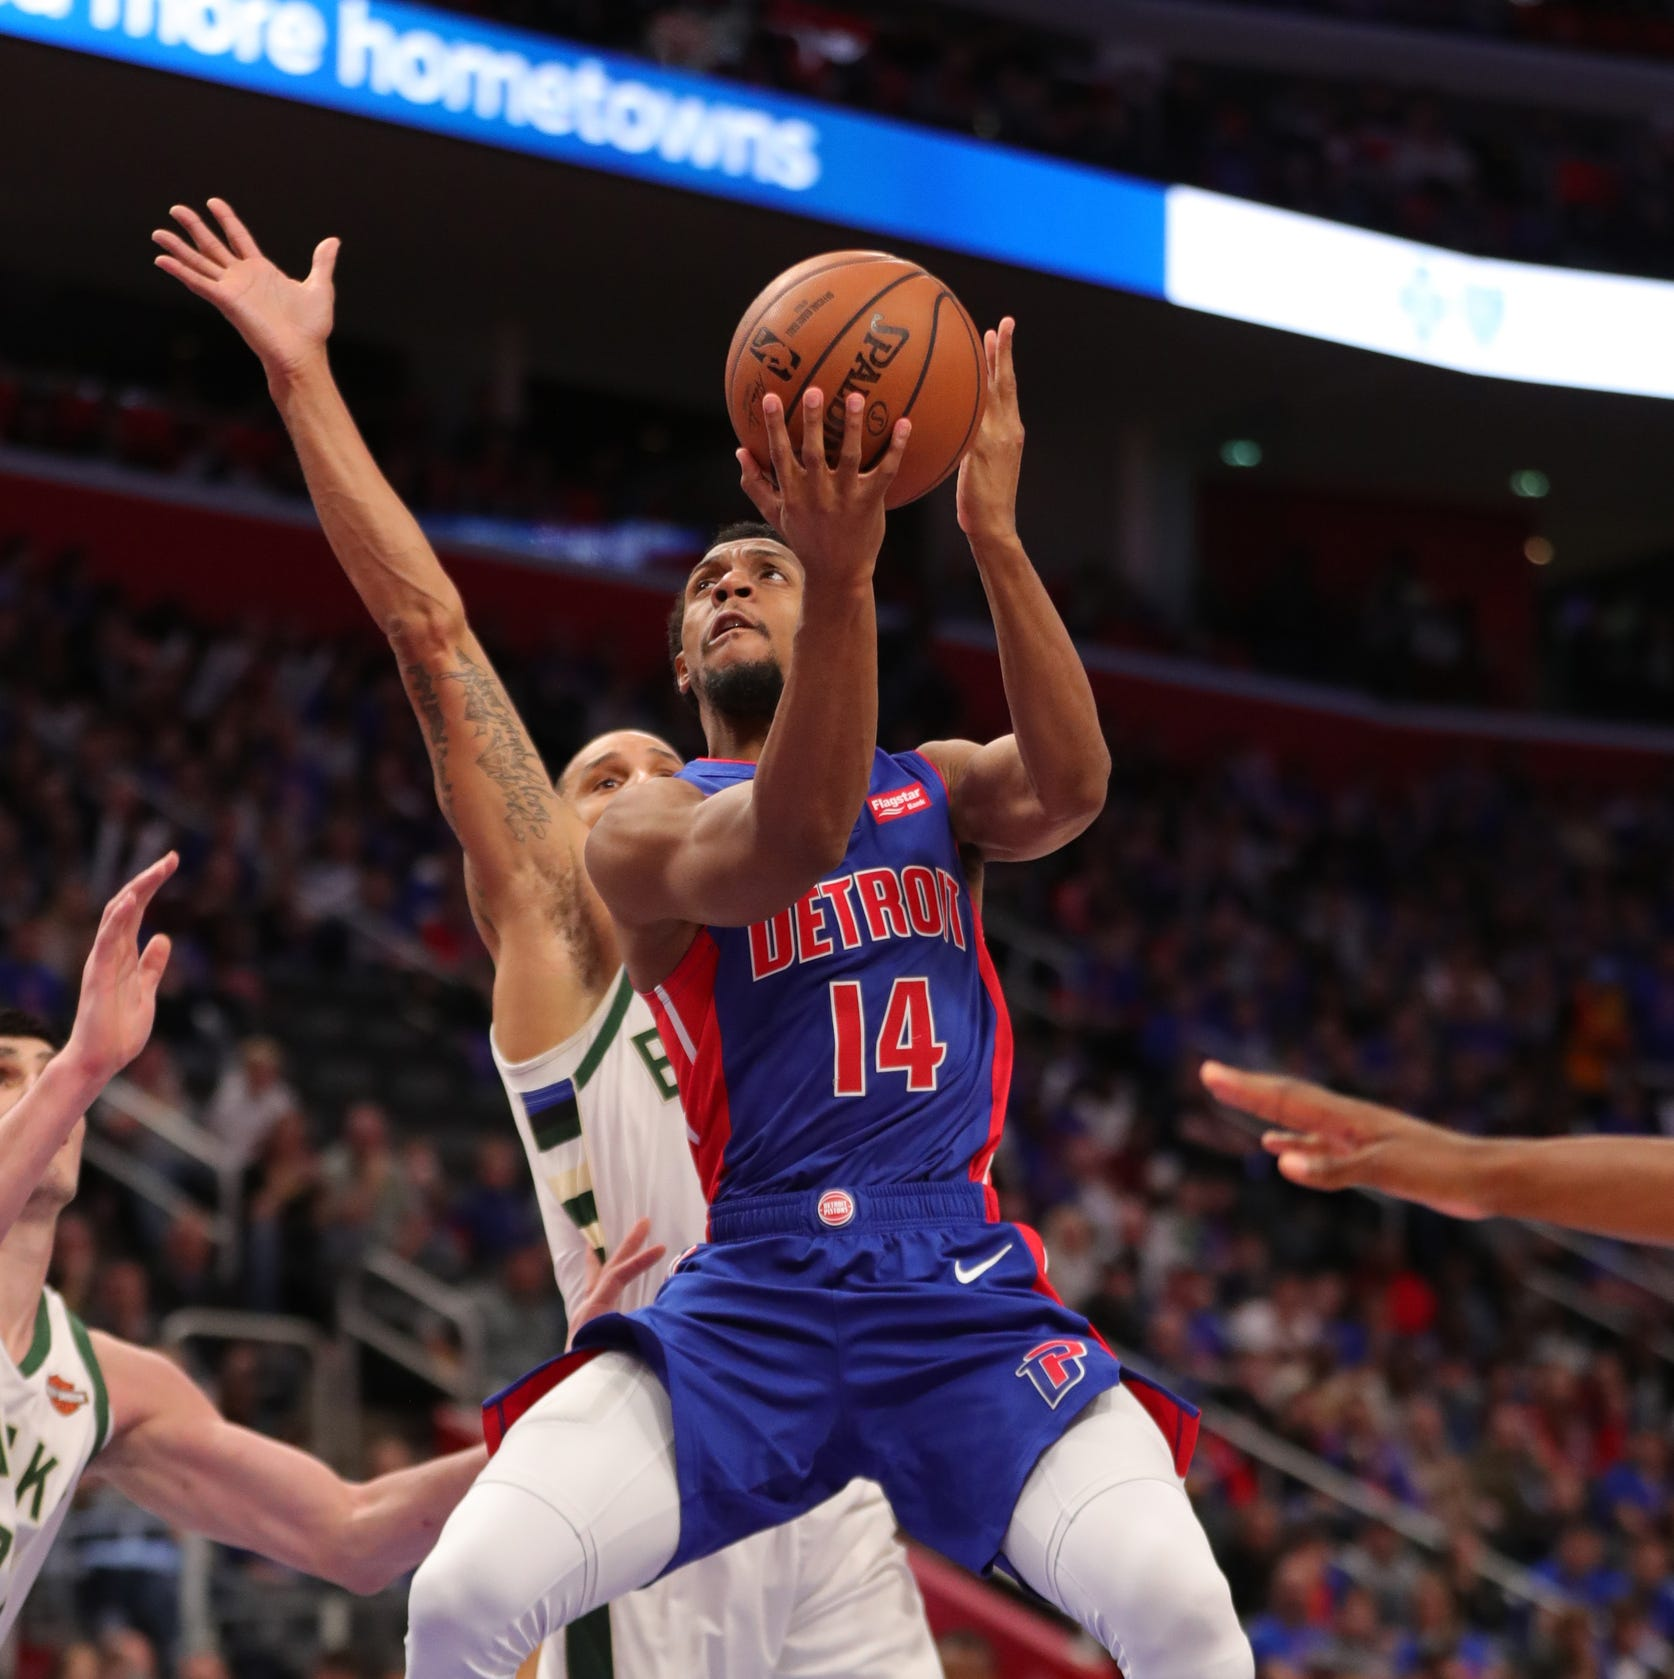 Detroit Pistons have work to do in replacing Ish Smith at point guard